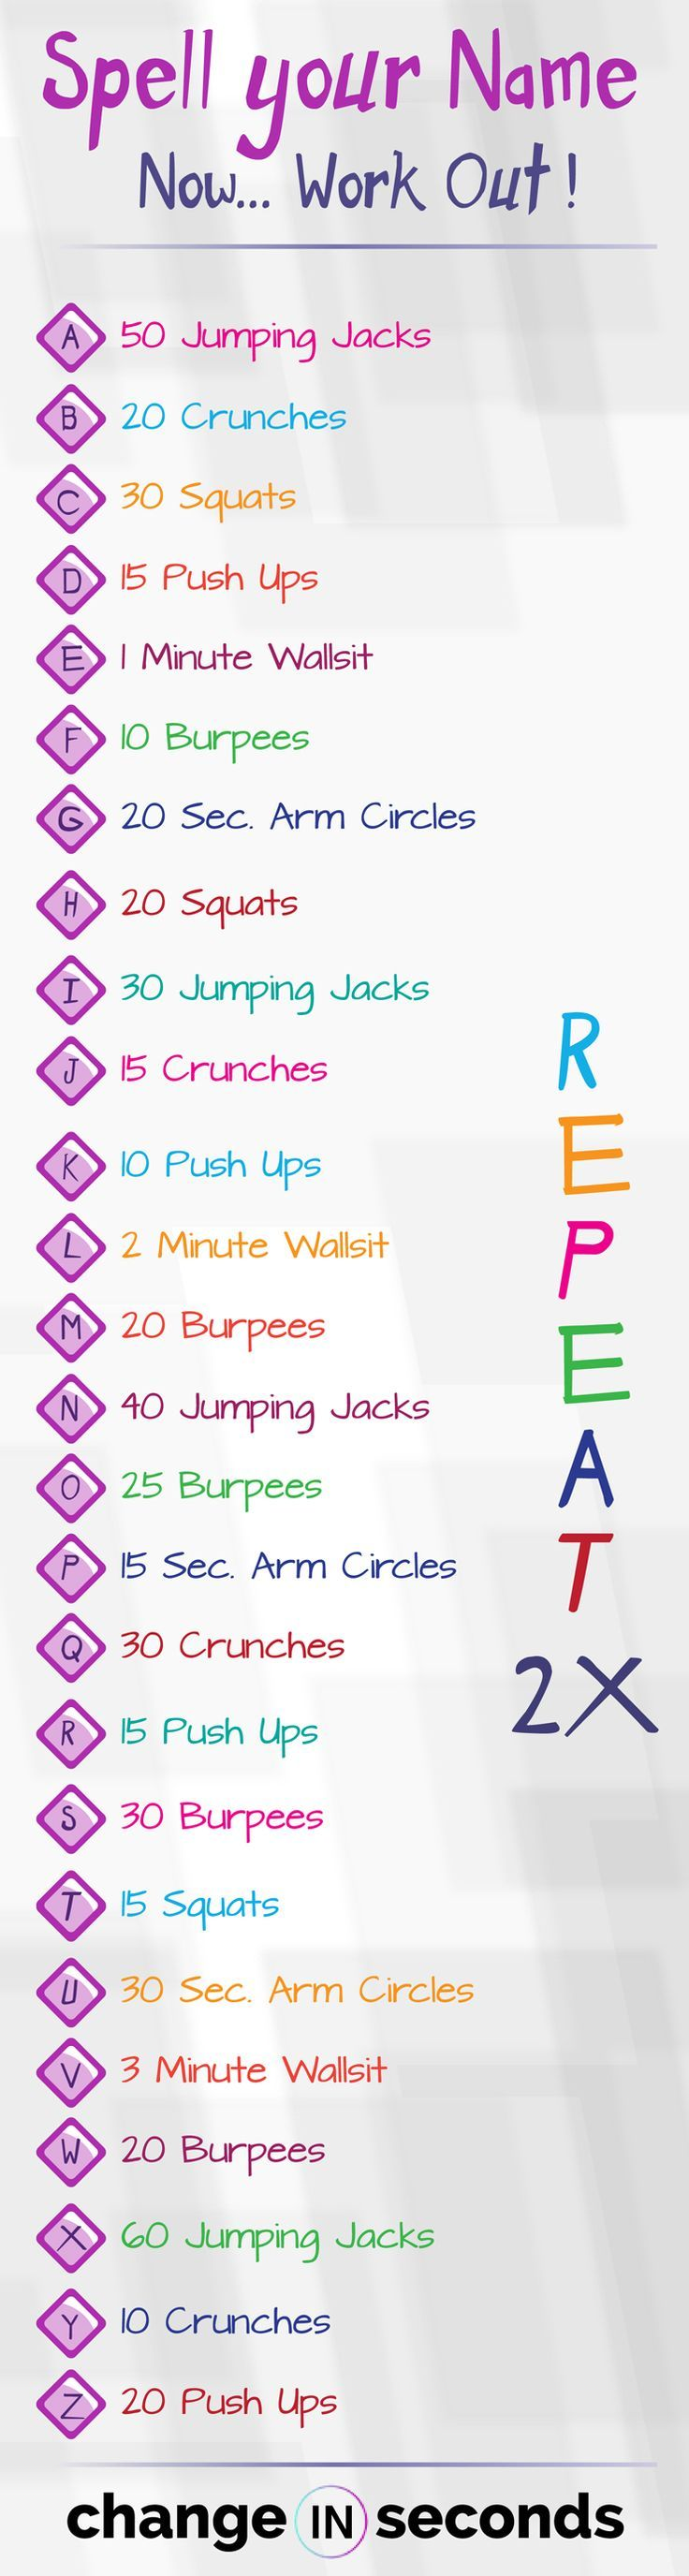 Spell Your Name Workout Challenge - Get In Shape Fast (Download PDF)